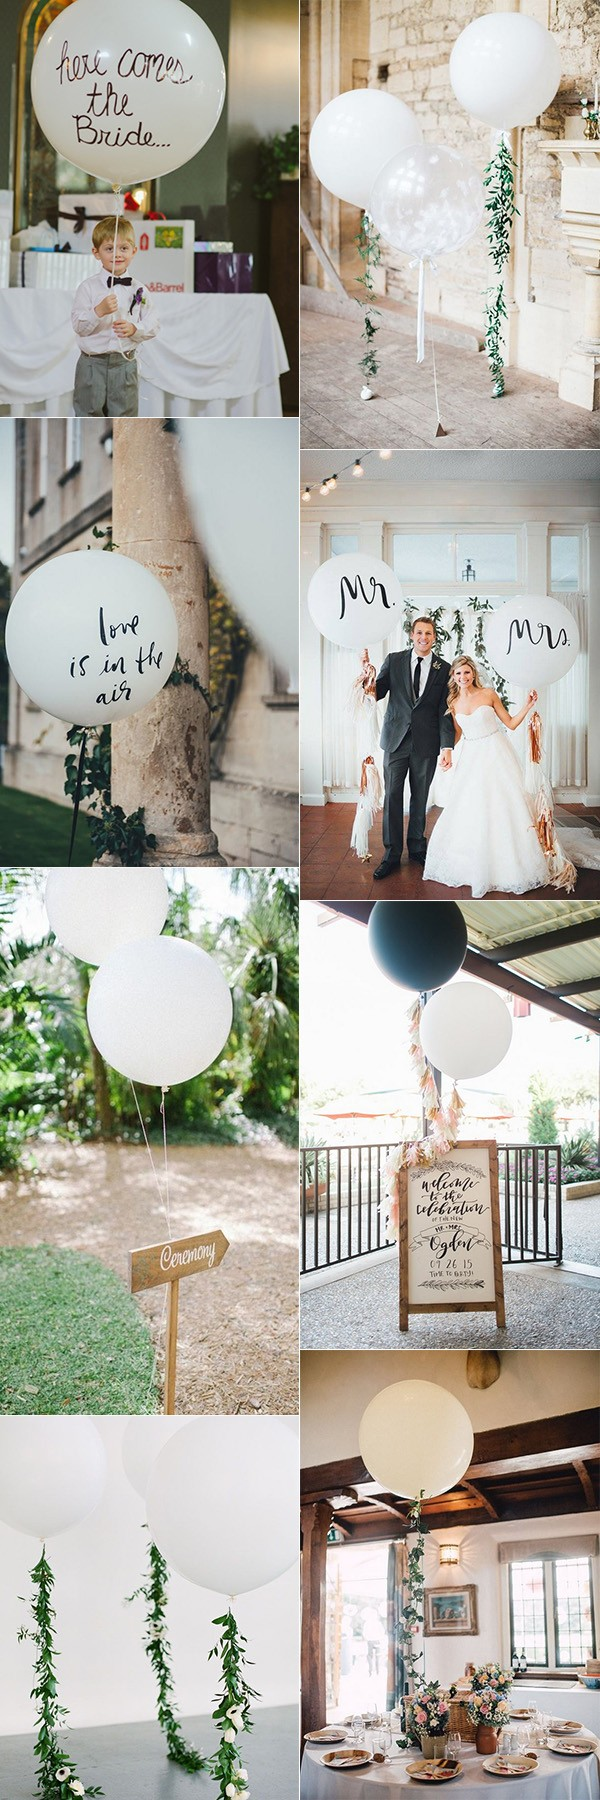 18 Awesome Wedding Ideas to Use Balloons - Page 2 of 2 ...